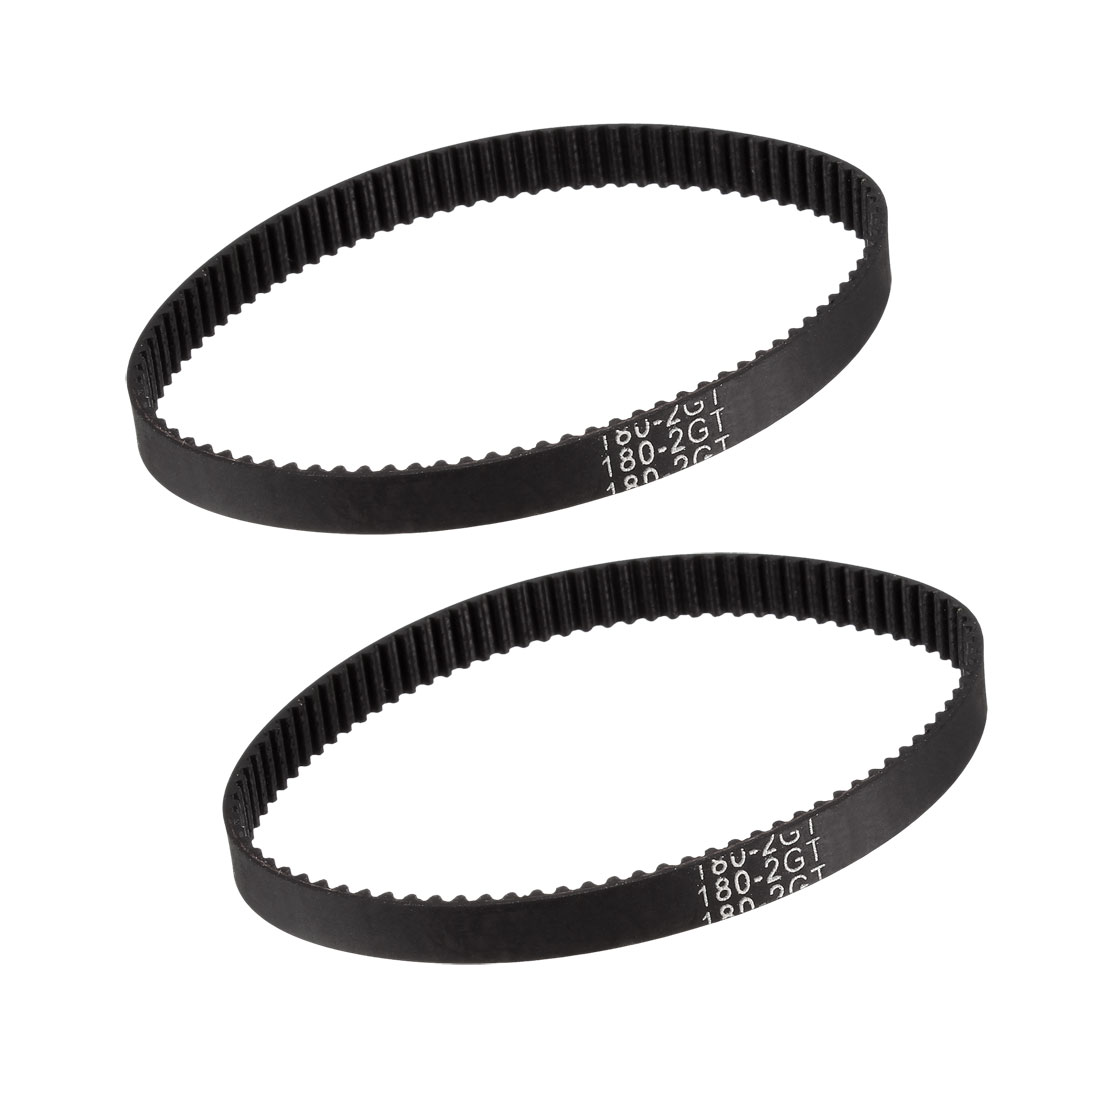 GT2 Timing Belt 180mm Closed Fit Synchronous Wheel for 3D Printer 2pcs